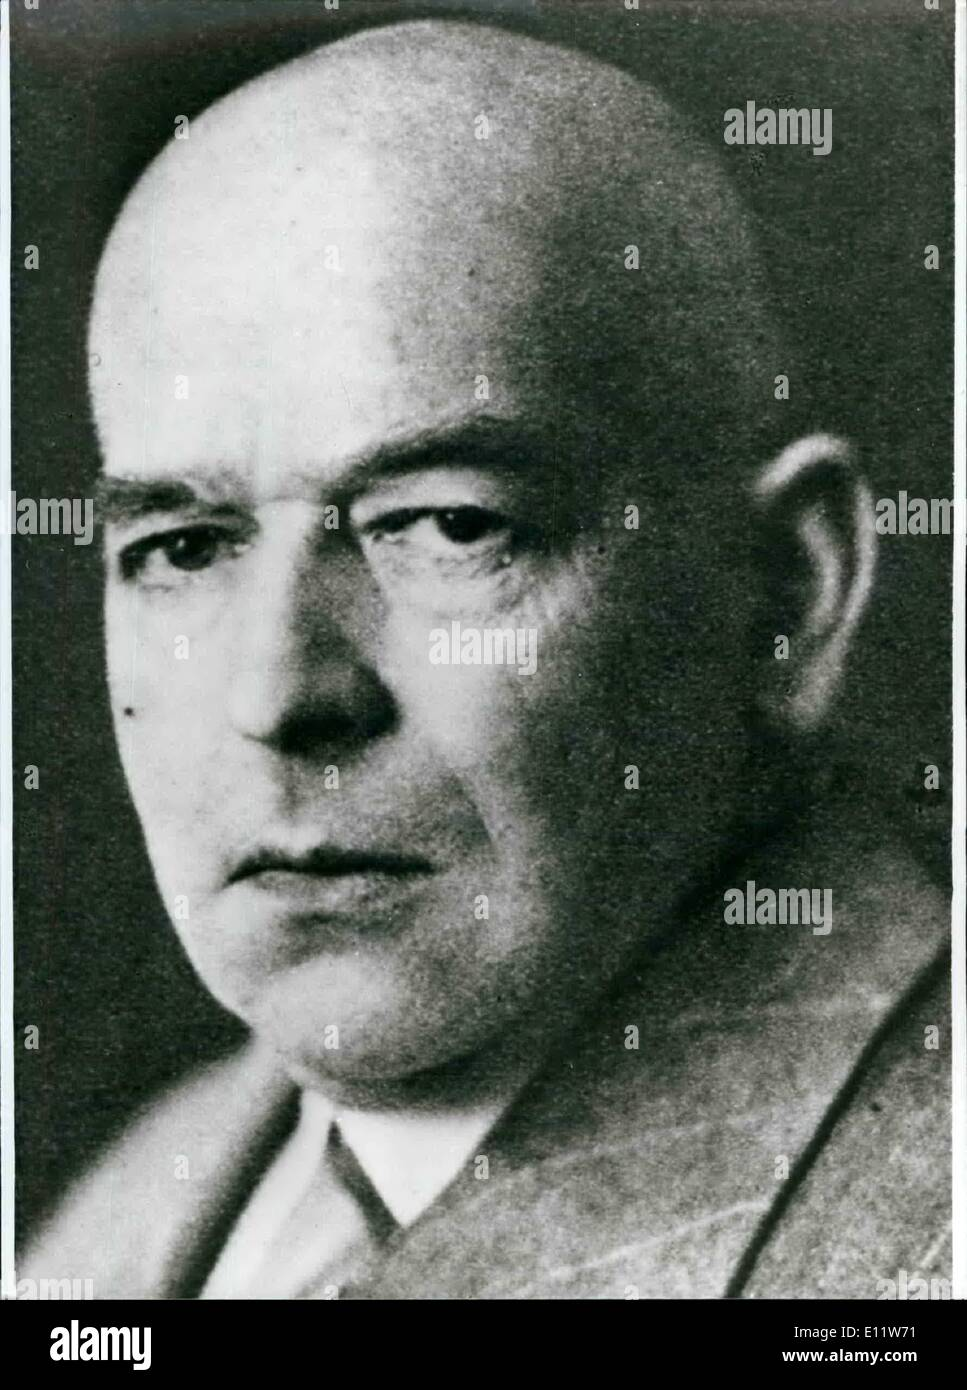 May 05, 1980 - 100th Birthday Oswald Spengler: At May 29th, 1886 in Blankenburg/West-Germany the professor for history and cultural - philosopher Oswald Spengler (Oswald Spengler, picture) was born. ''The end of the Occident'' a history-philosophy, influenced by Goethe and Nietzsche. In it he developed his theory, after it the world history till now was a unconnect side by side of eight independent high cultures. The work culminated in the thesis, the culture of the West ''have passed over it's culmination point - Stock Image